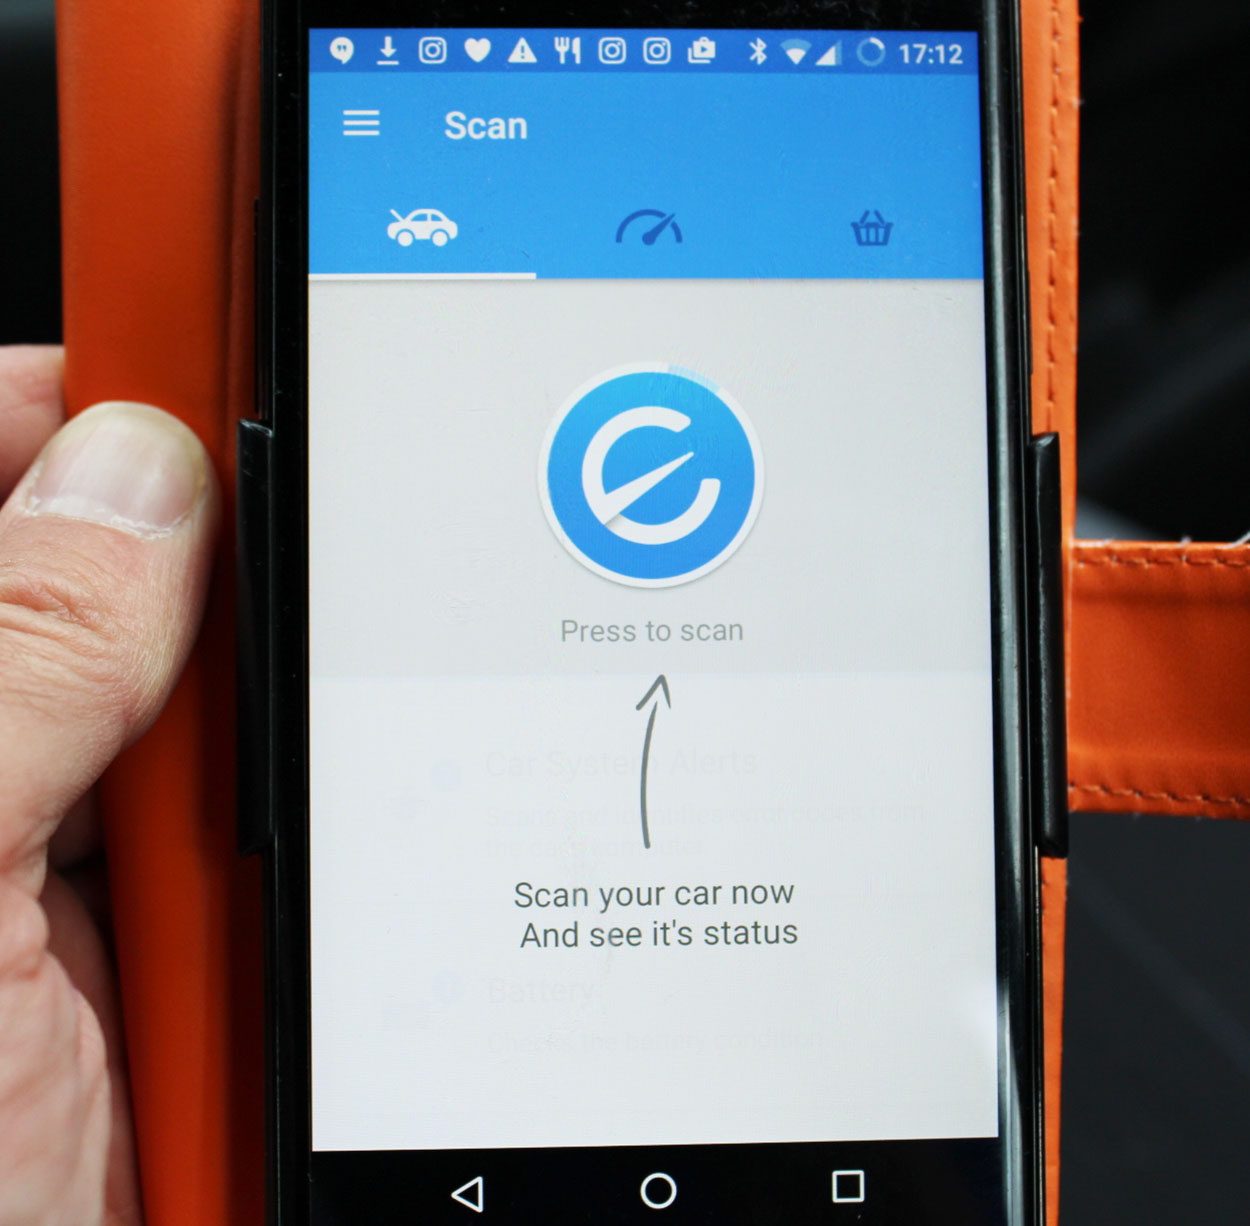 Engie, Engie app, car maintenance, dadbloguk, dadbloguk.com school run dad, reviews, review, car tech, car gadgets